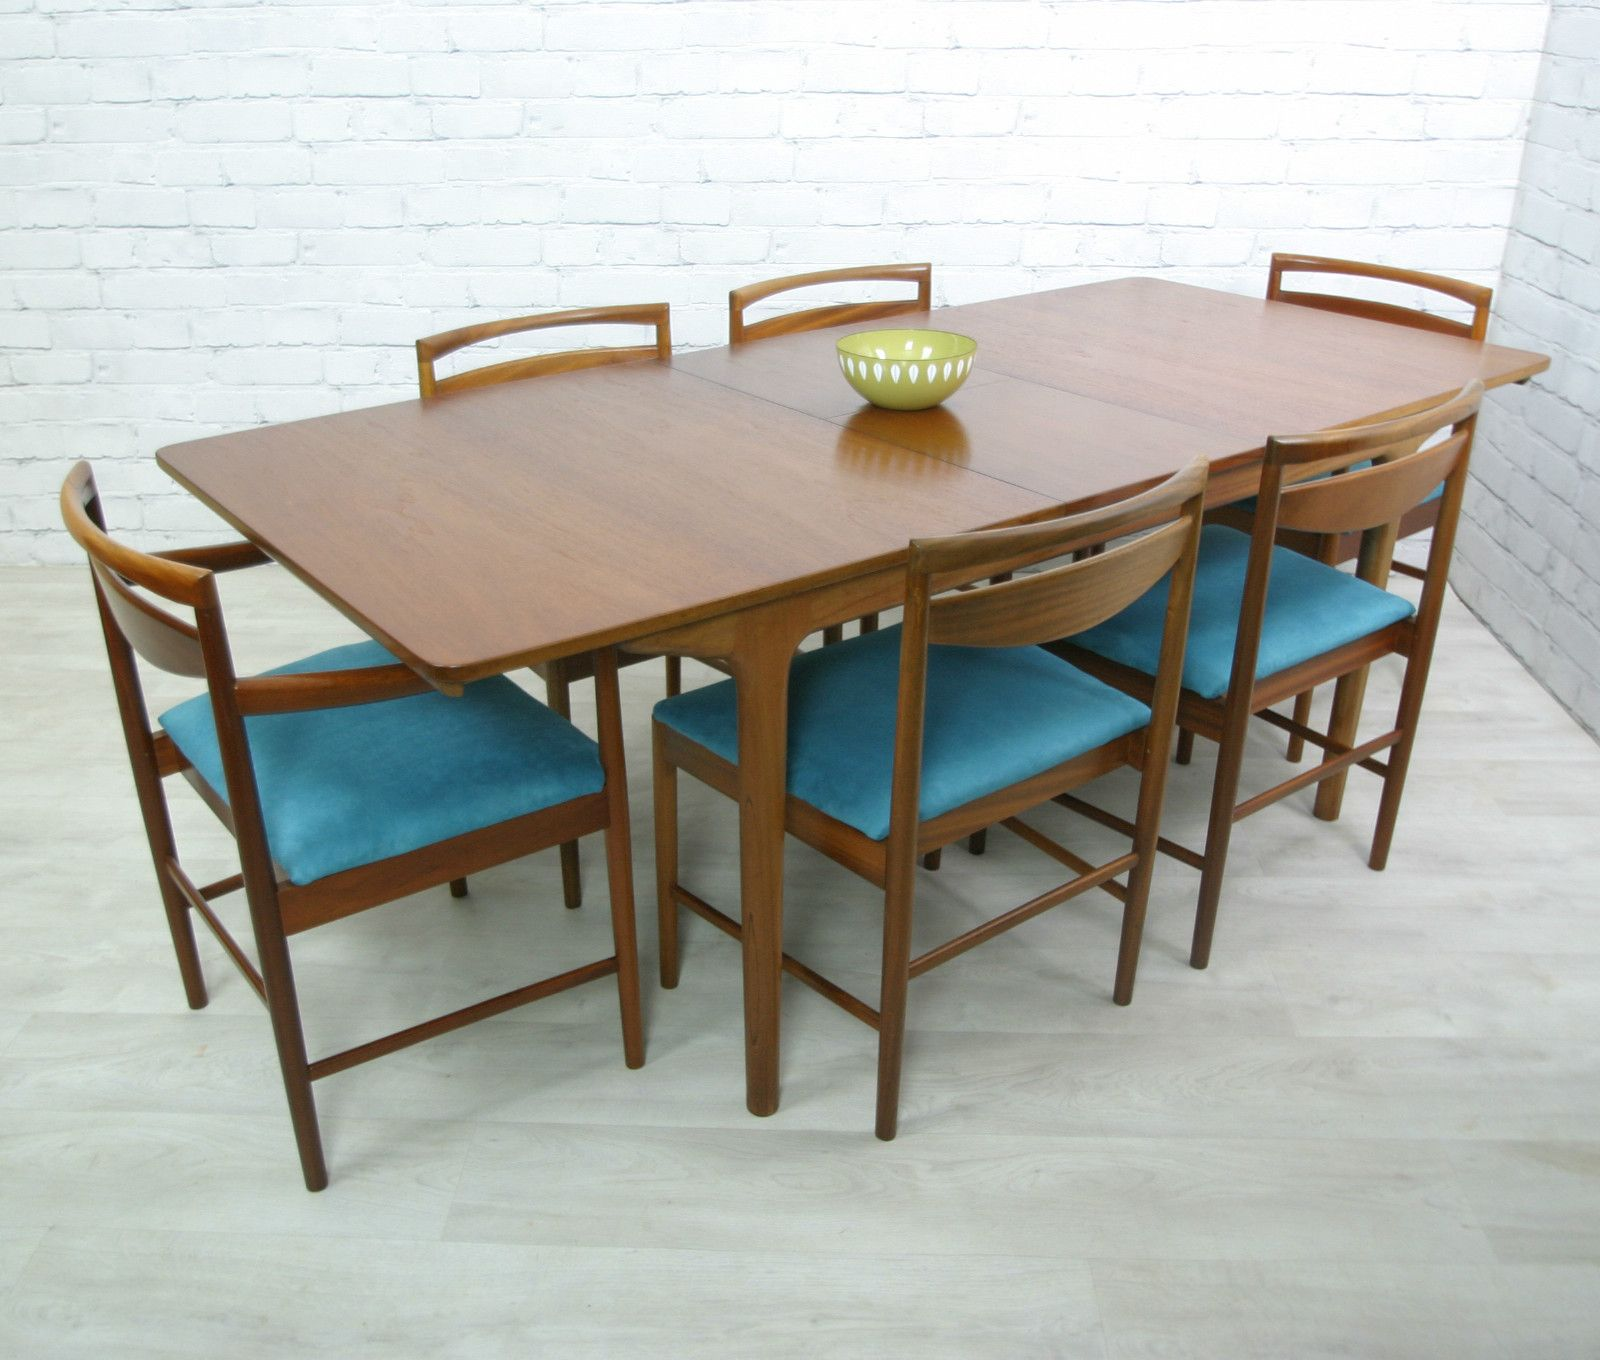 Vintage Dining Room Tables: This Is My MeeMee's Dining Table. McINTOSH RETRO VINTAGE